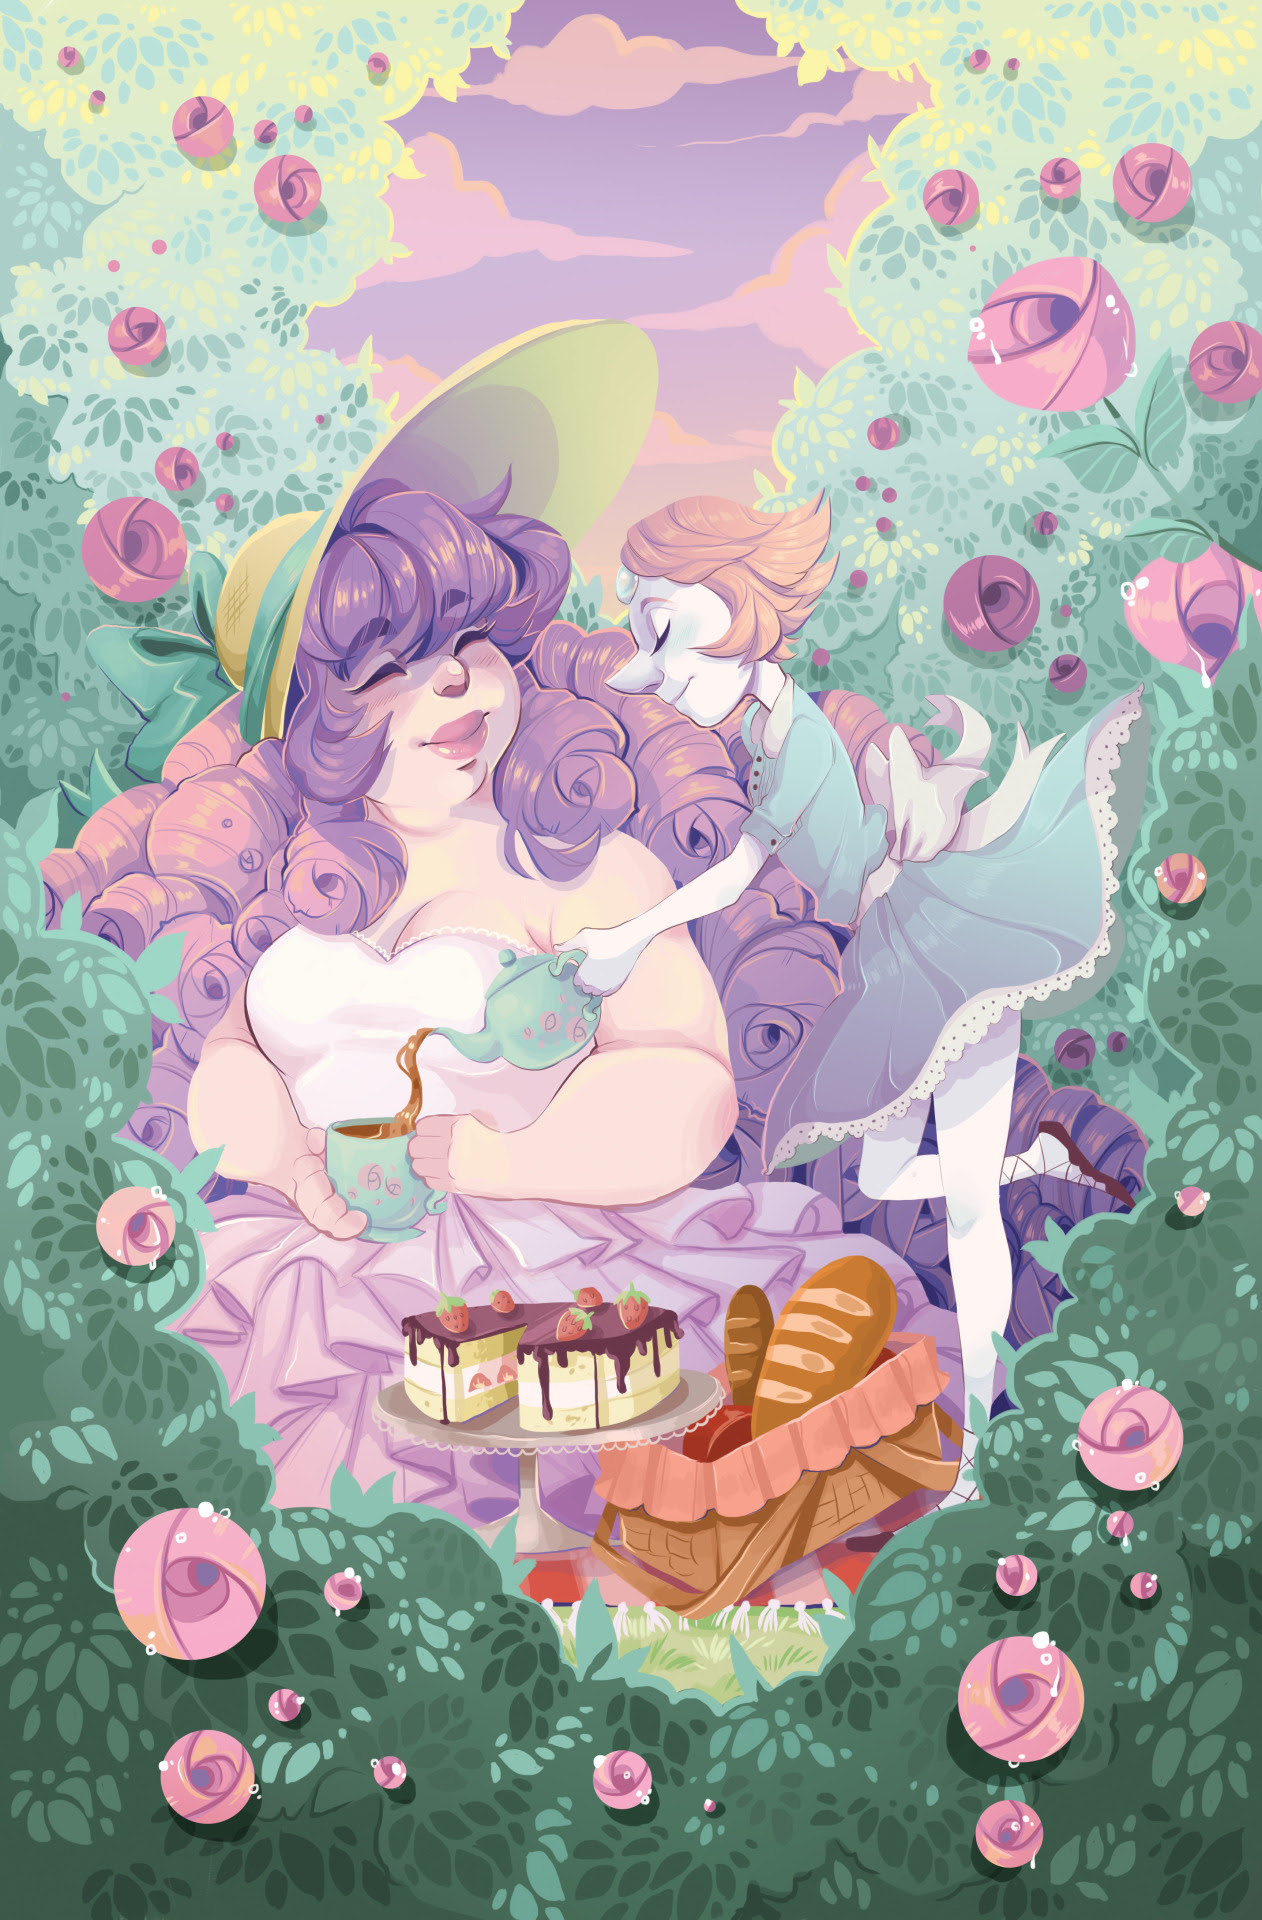 Pearl and Rose having a tea party, an 11x17 print that I will be selling at a con I'll be at in spring~~